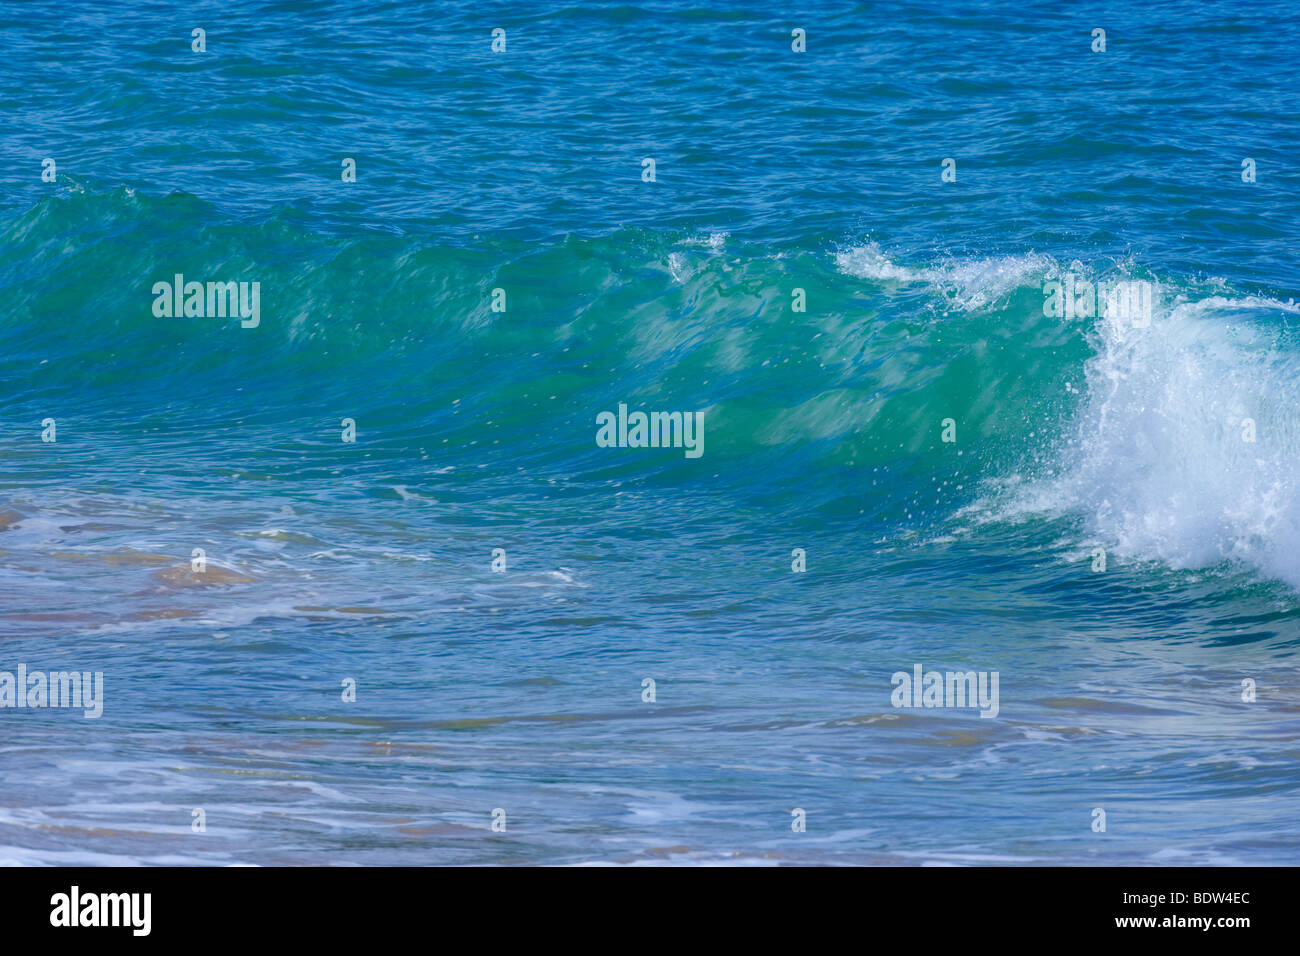 a wave breakes in the vincinity of the beach, Bay of Islands, Northland, North Island, New Zealand - Stock Image